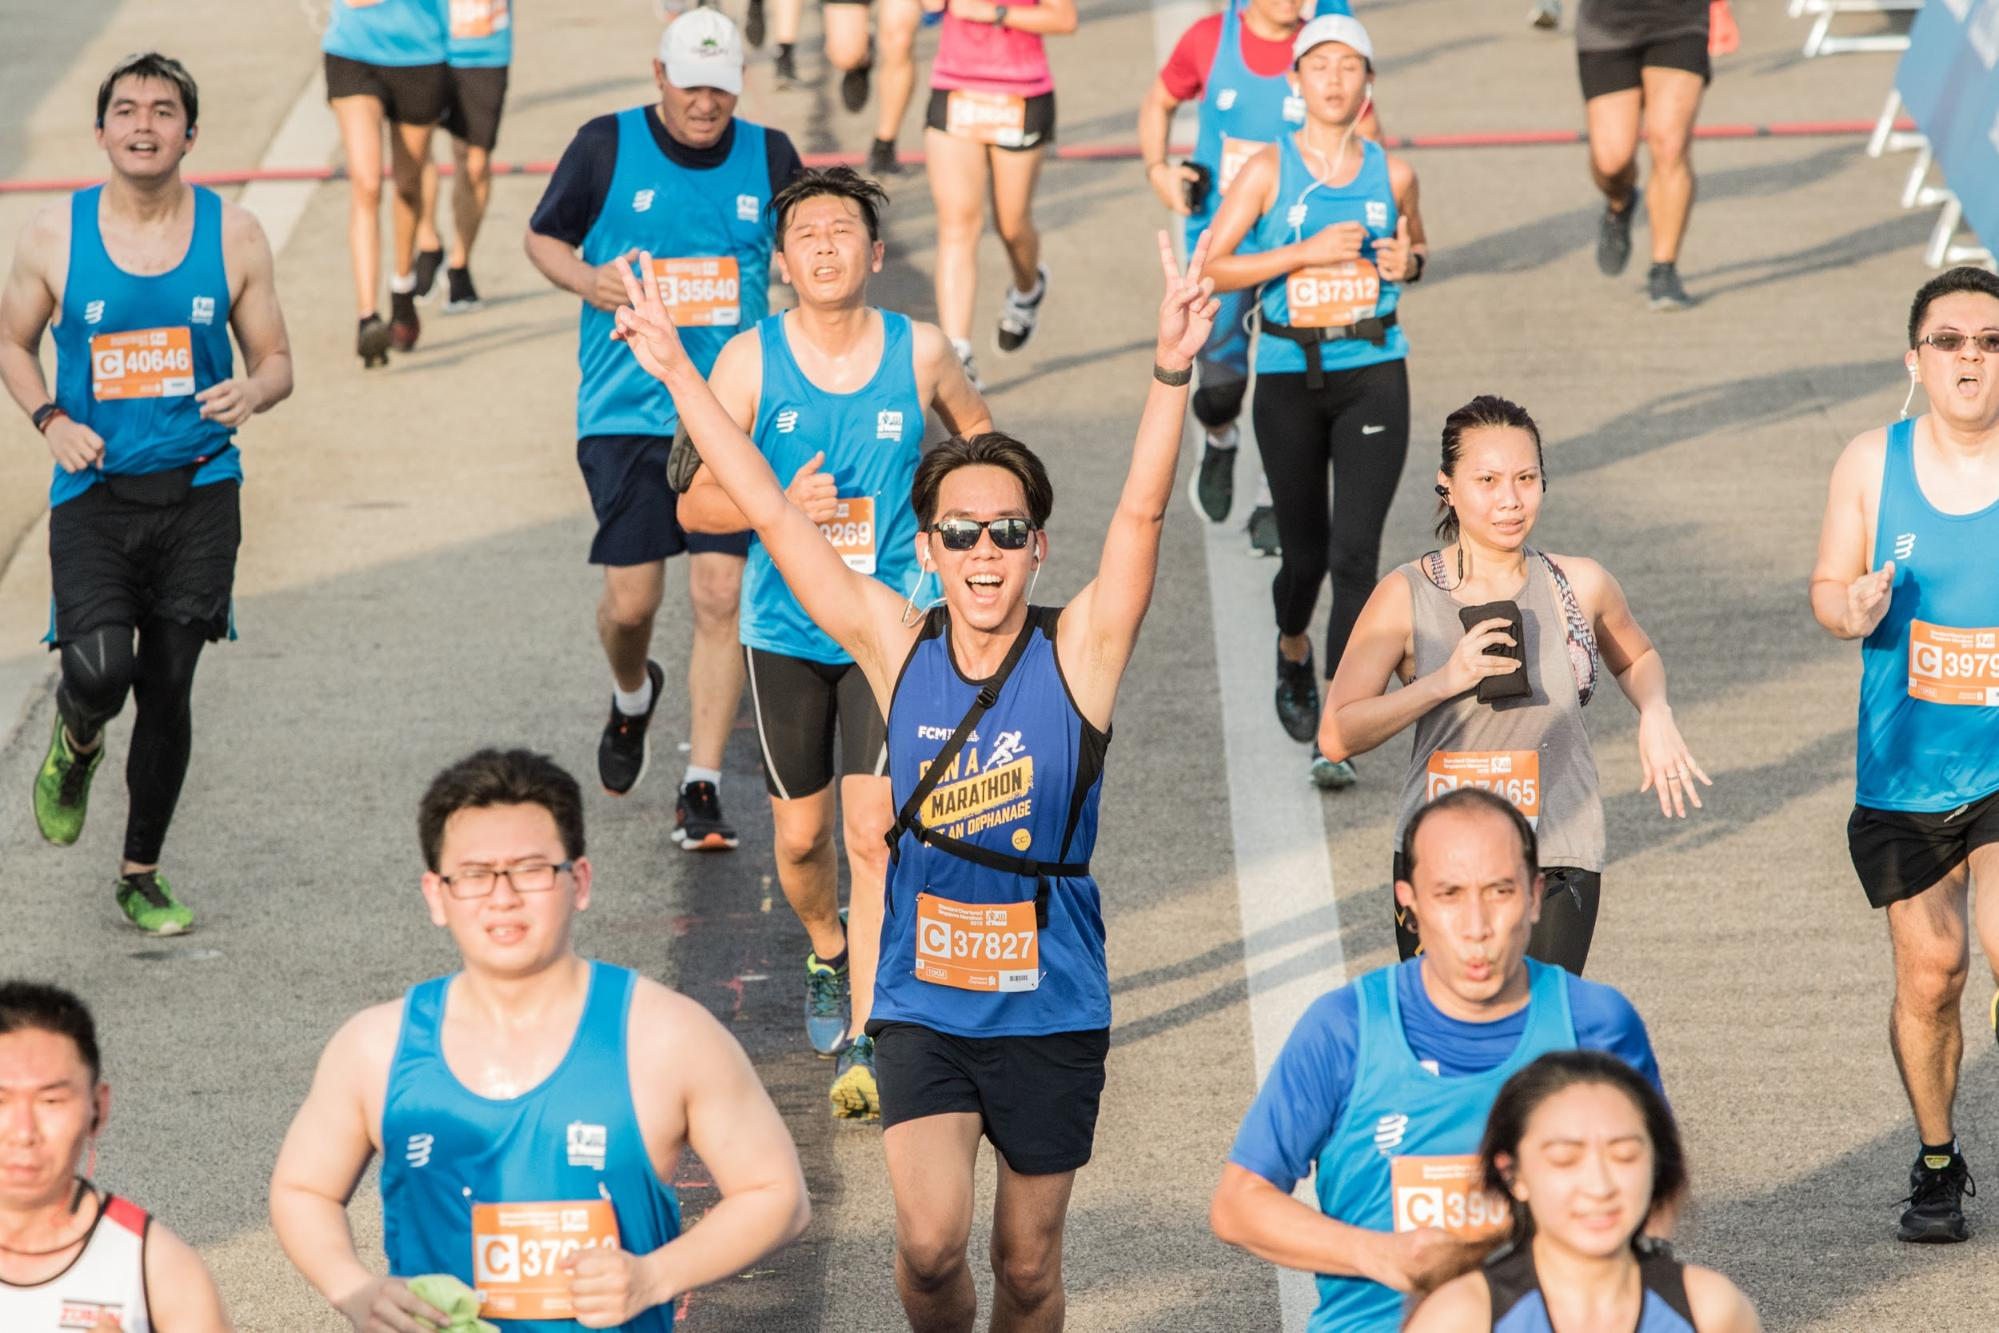 standard chartered singapore marathon, things to do december 2020